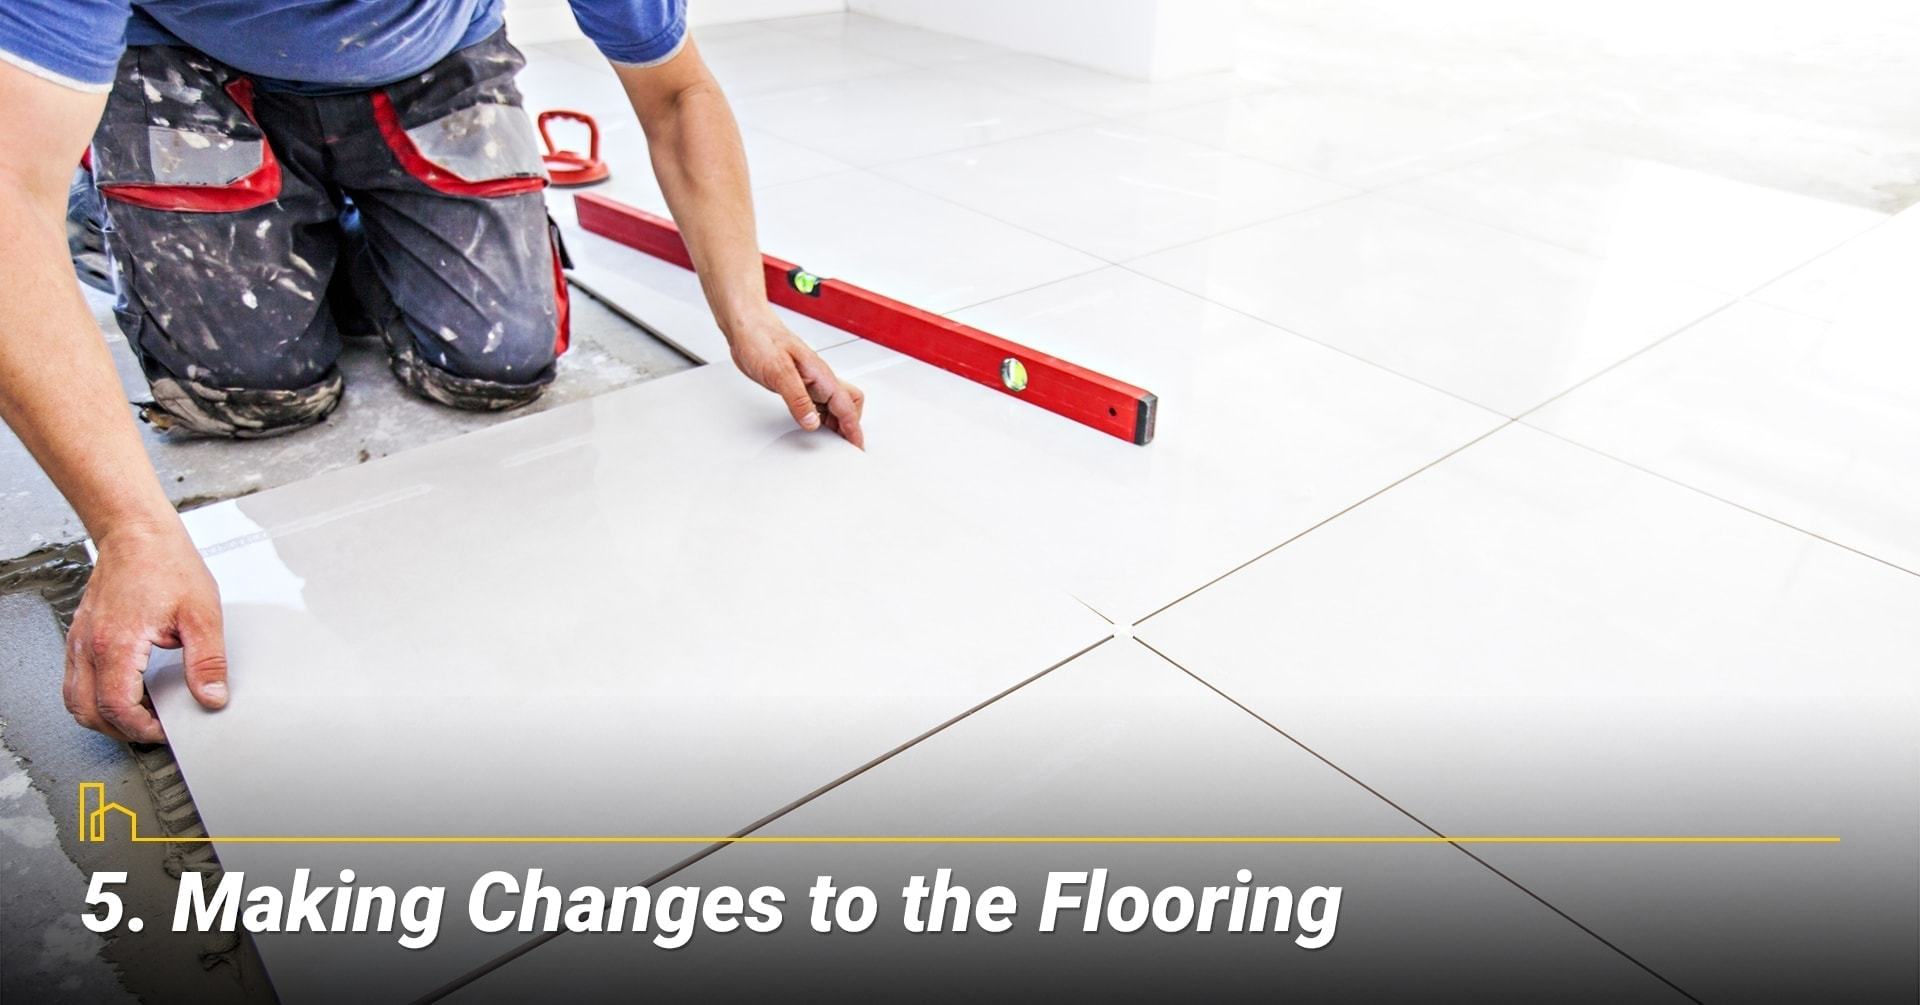 Making Changes to the Flooring, replace old floor